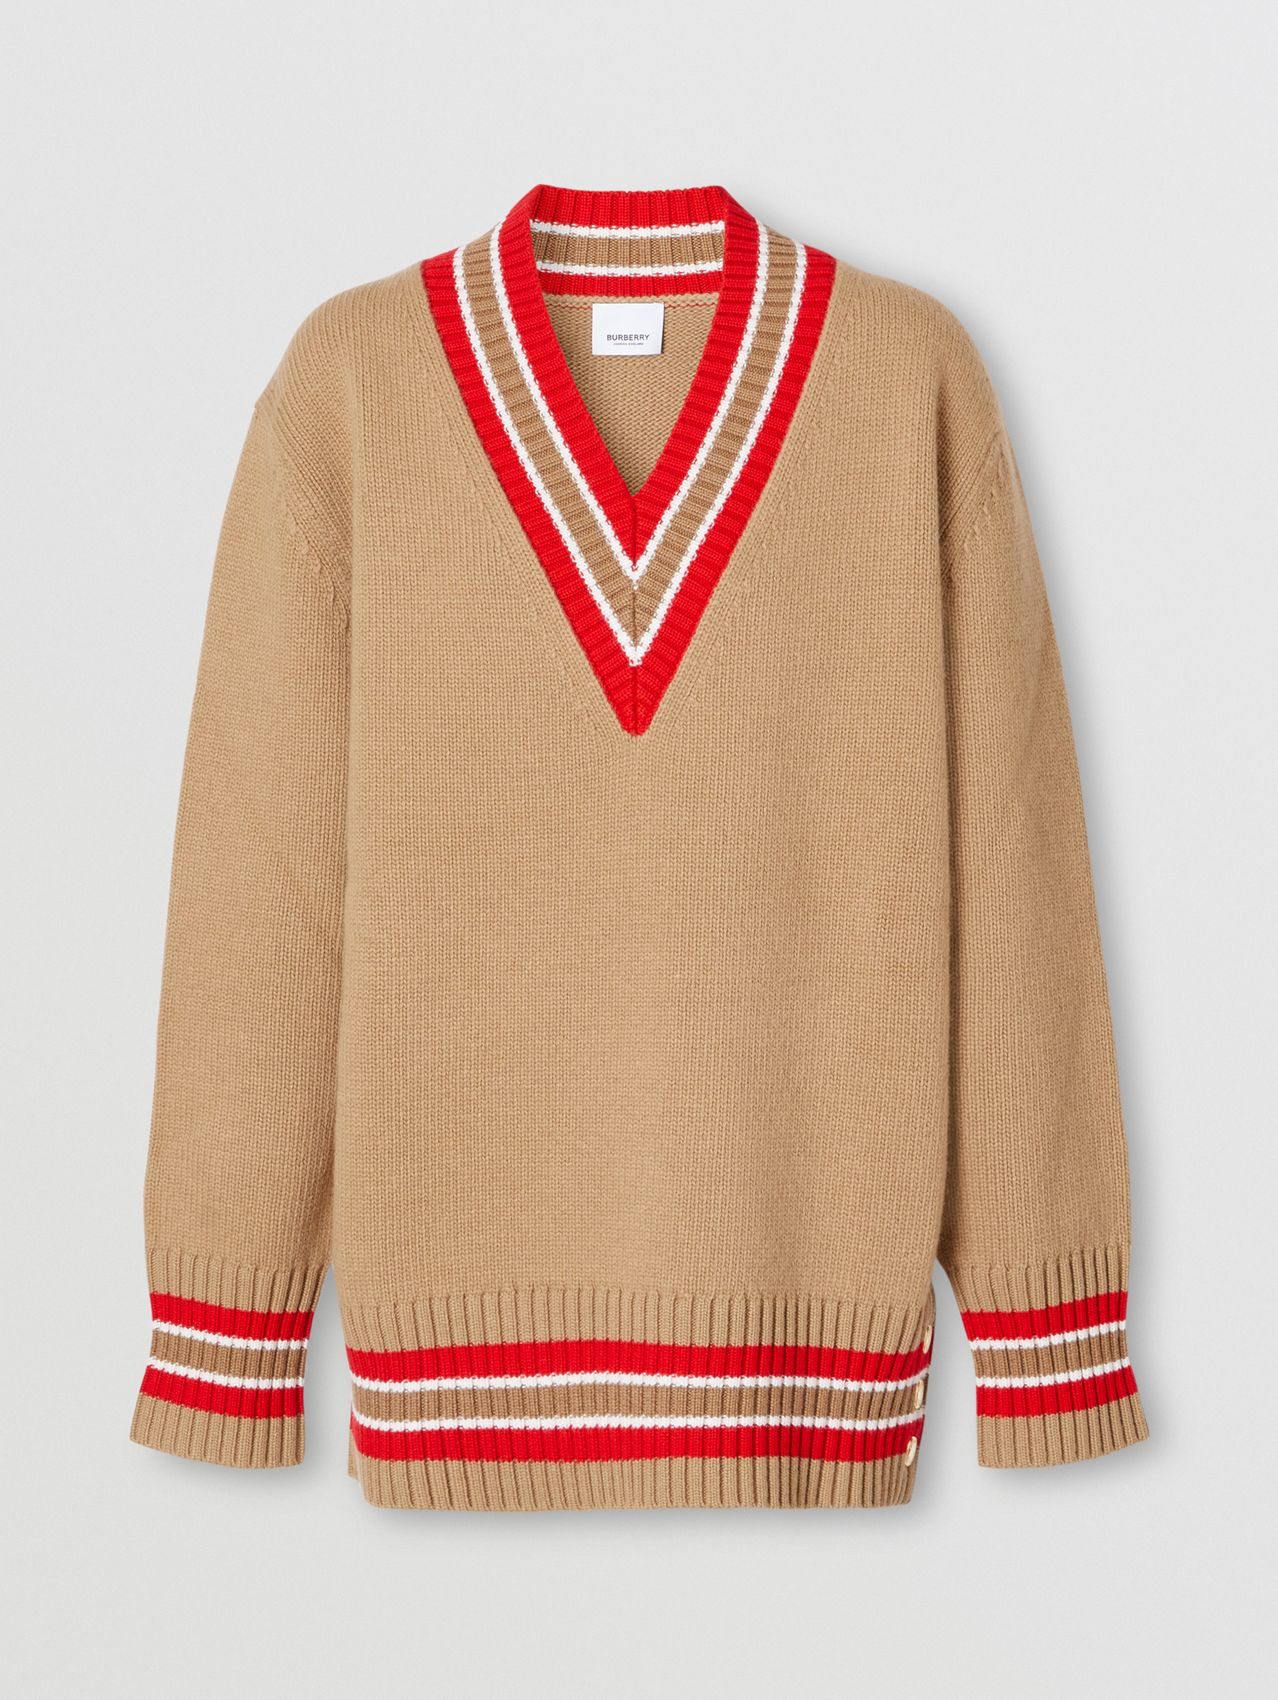 Wool Oversized Cricket Sweater in Camel